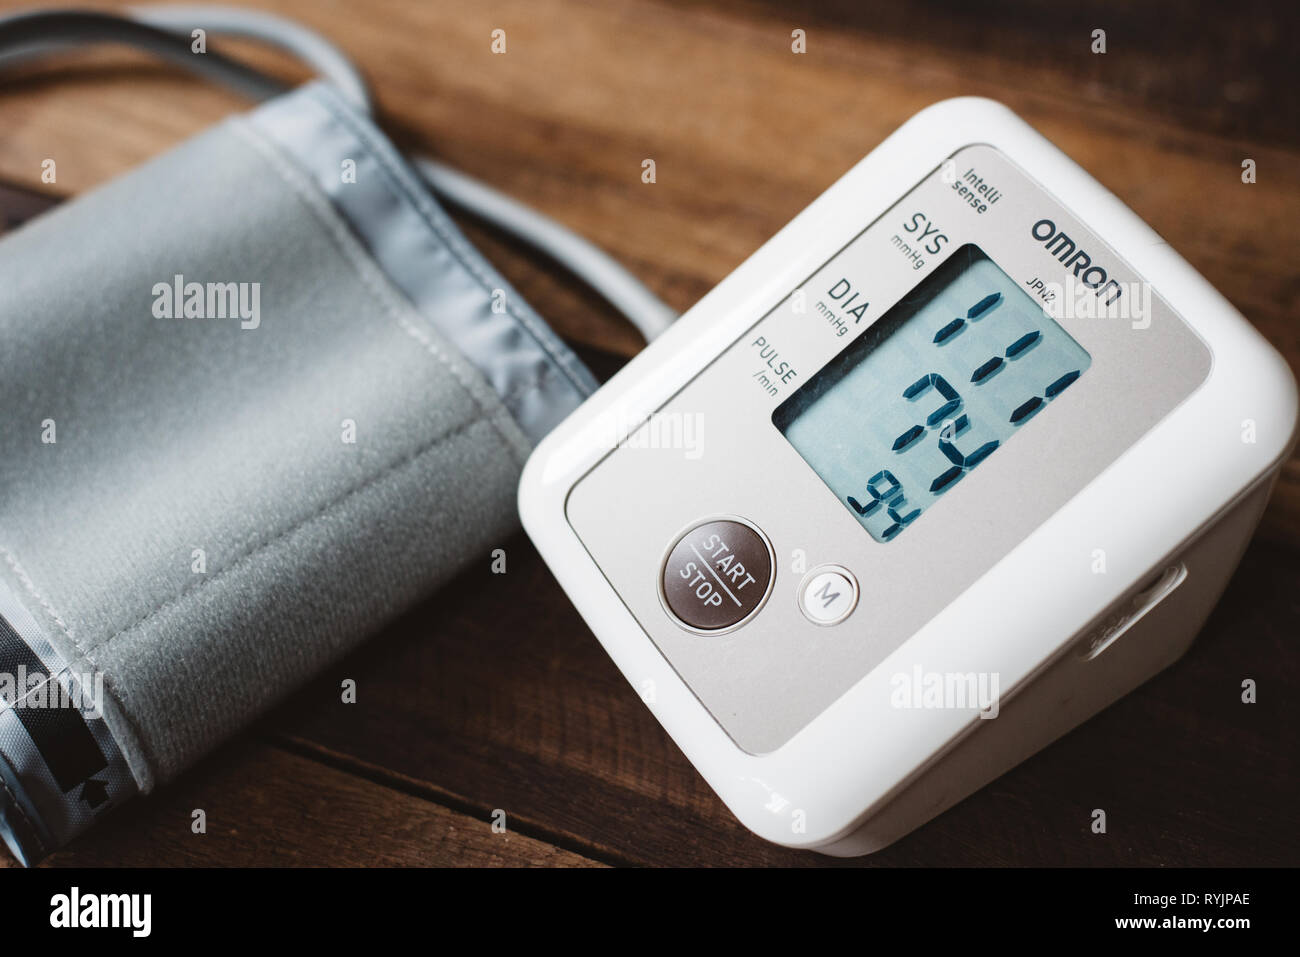 Petaling Jaya, Selangor, Malaysia - 14 March 2019 : Sphygmomanometer or electronic blood pressure from brand OMRON on a wooden desk. Omron is a well k - Stock Image